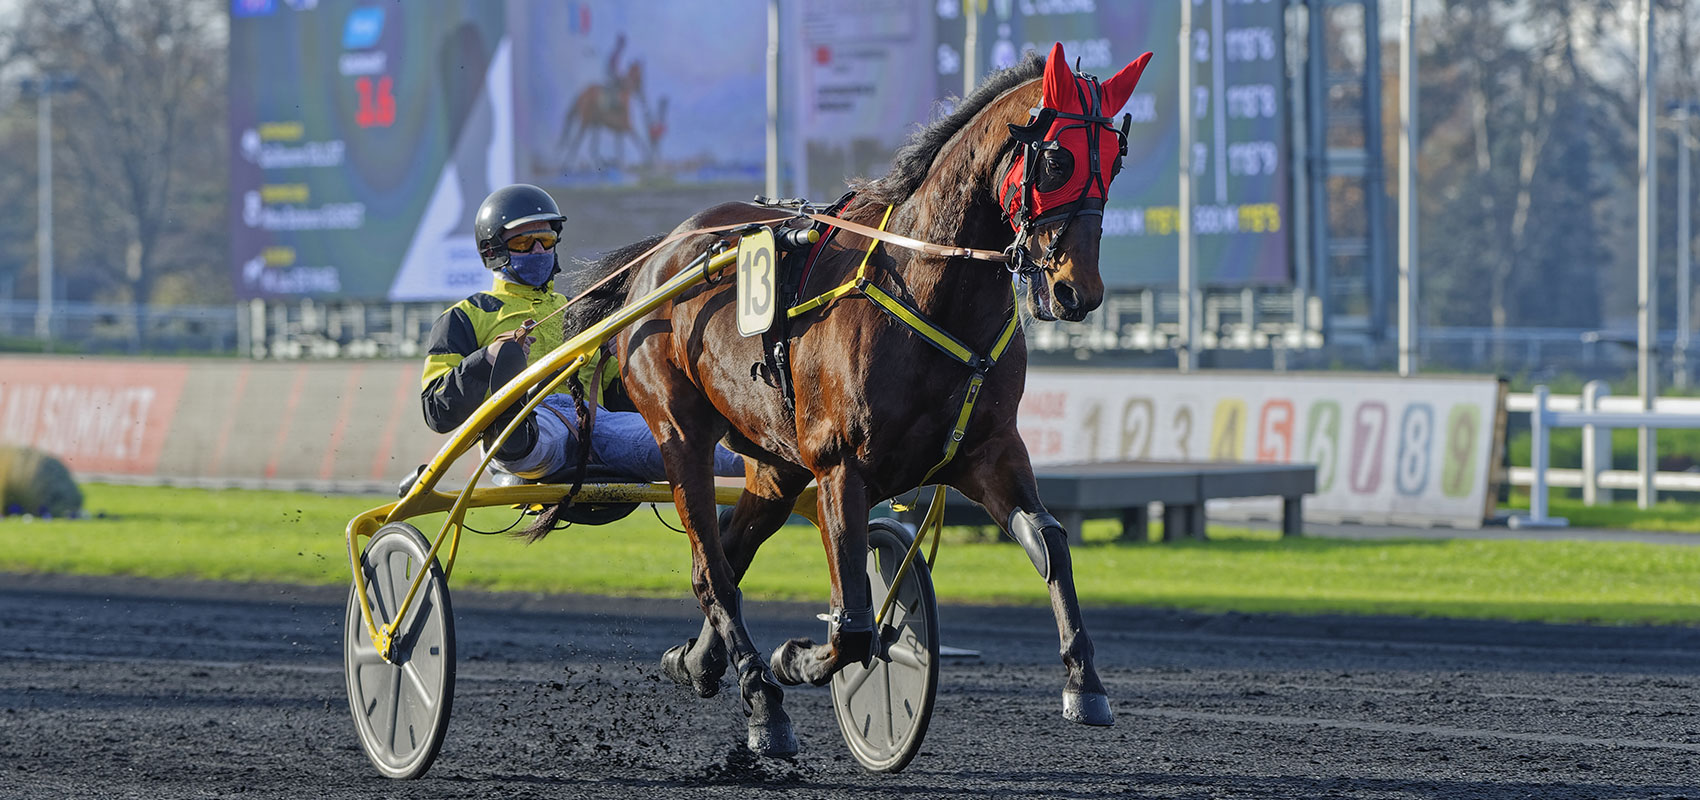 Bahia Quesnot wins in Italy